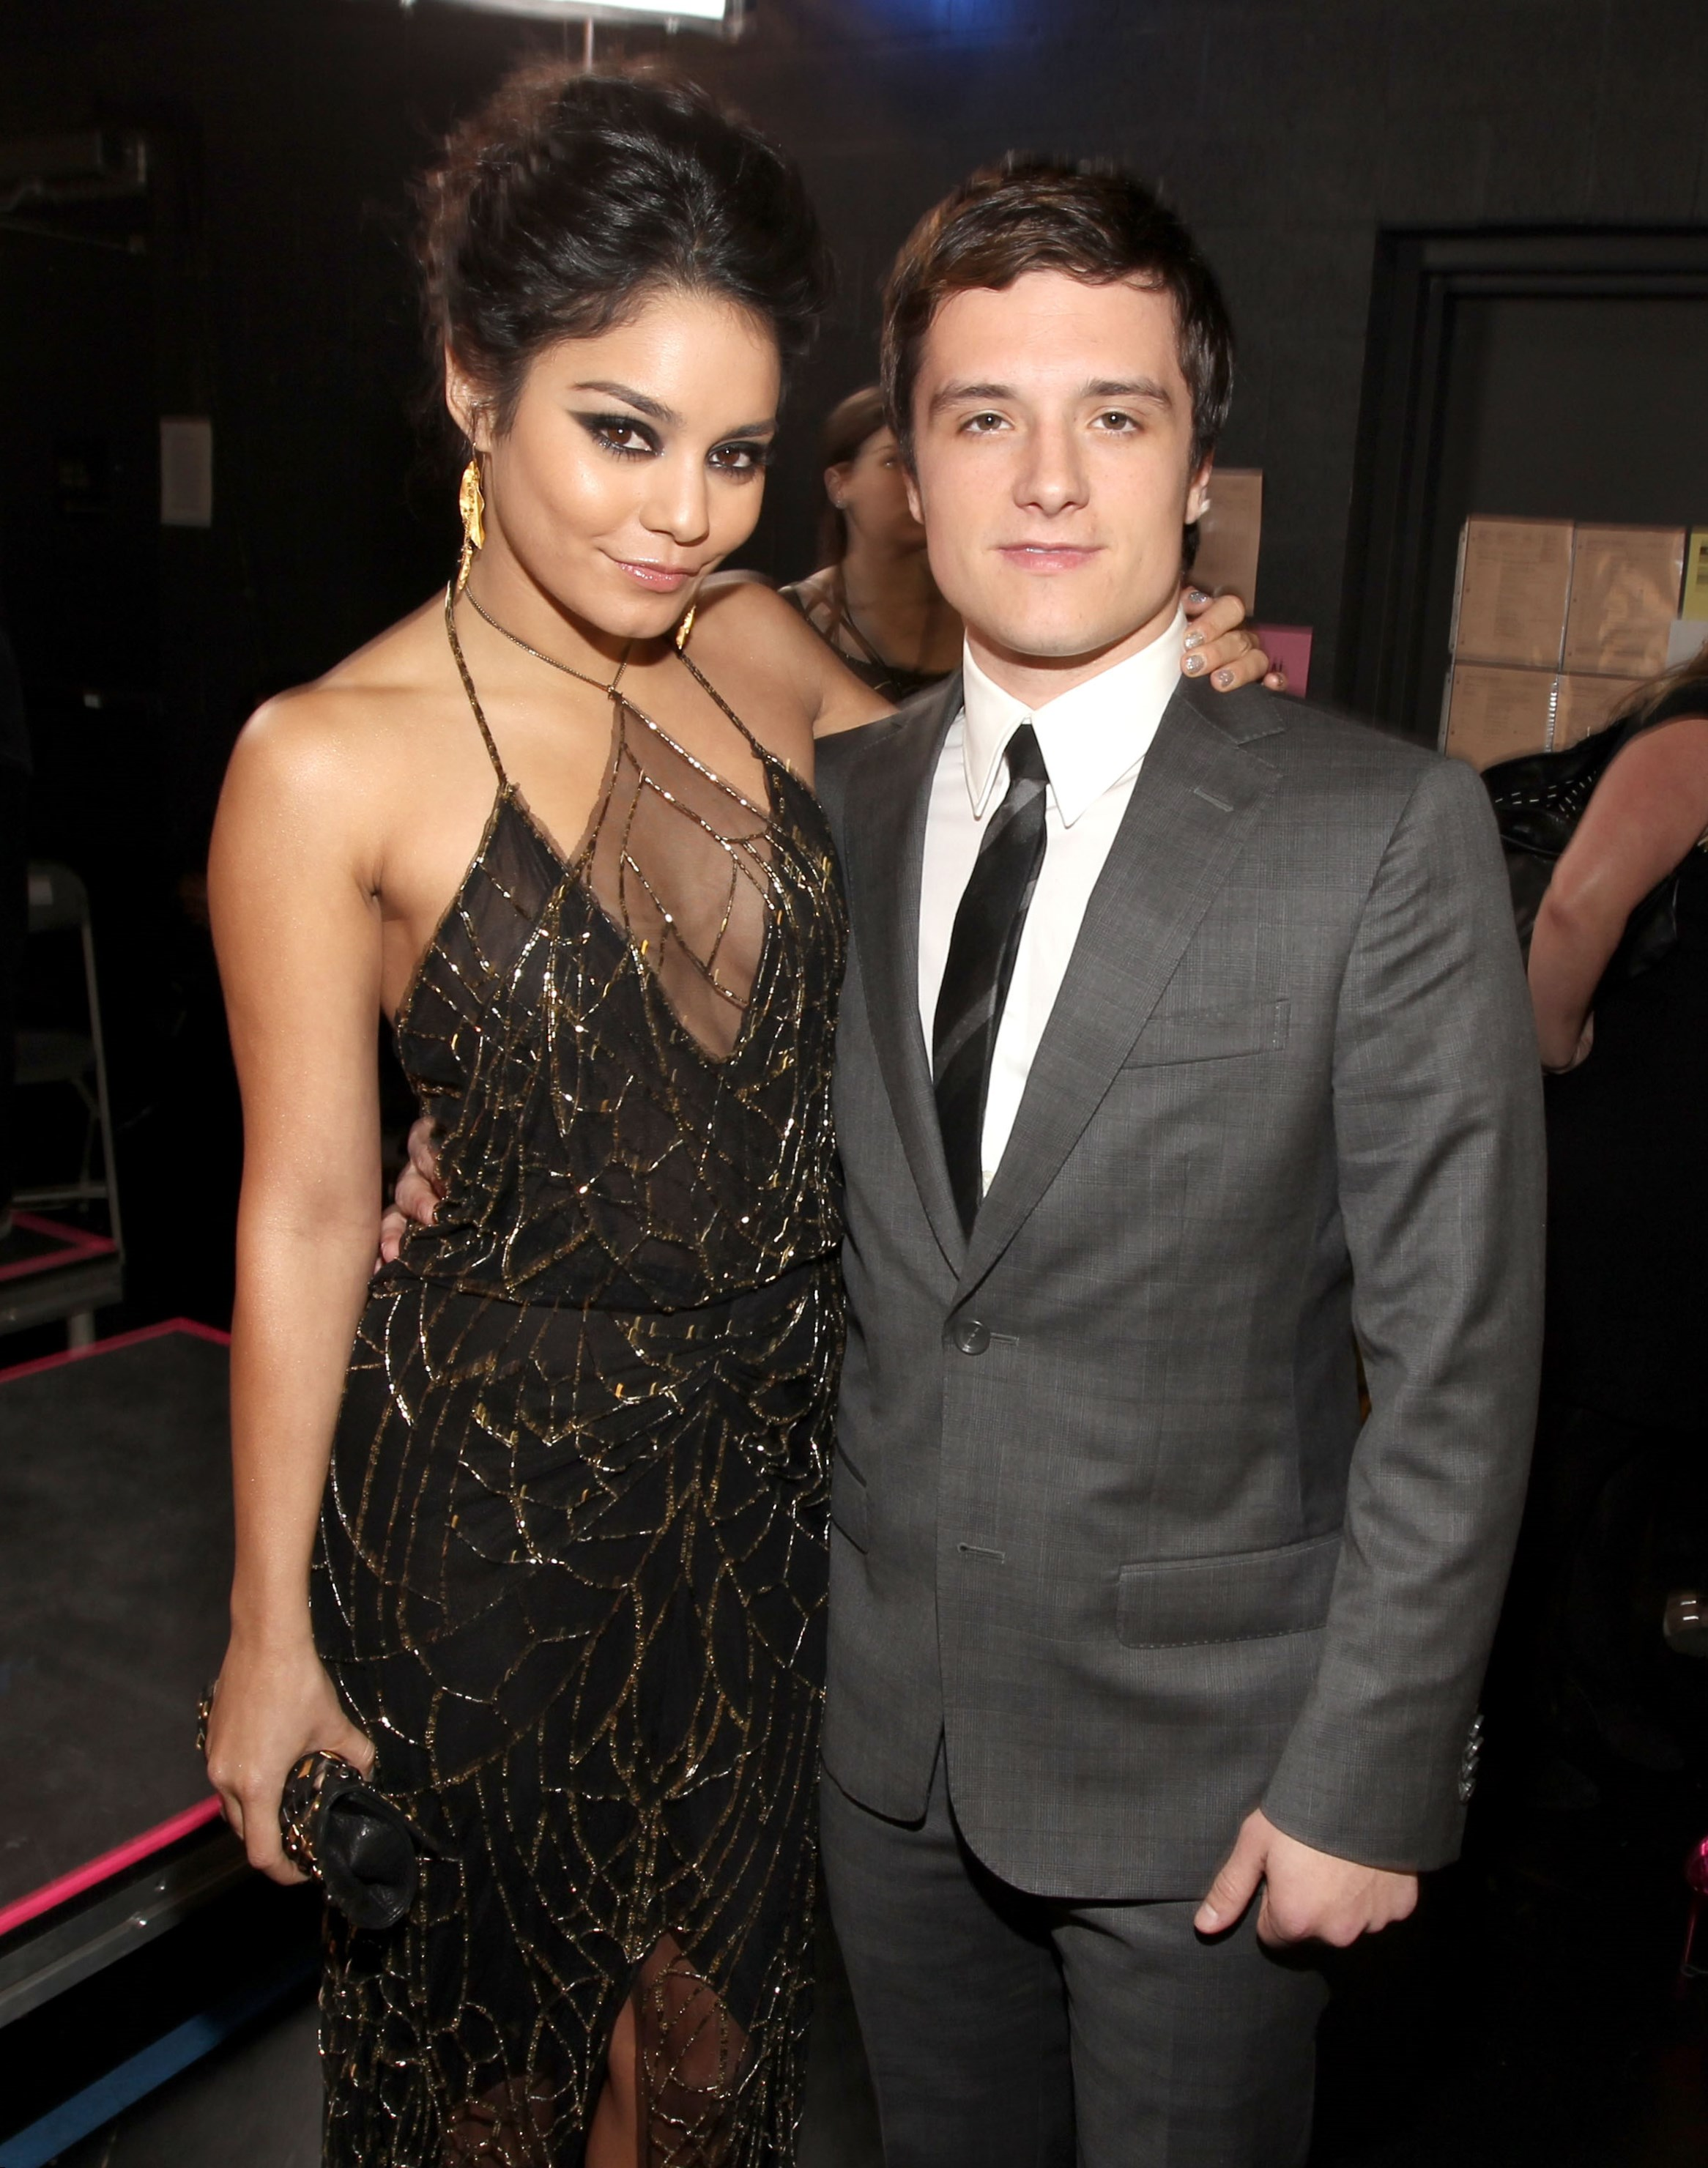 hutcherson dating Vanessa hudgens in 2018: still dating her boyfriend austin butler how rich is she does vanessa hudgens have tattoos does she smoke + body measurements & other facts.